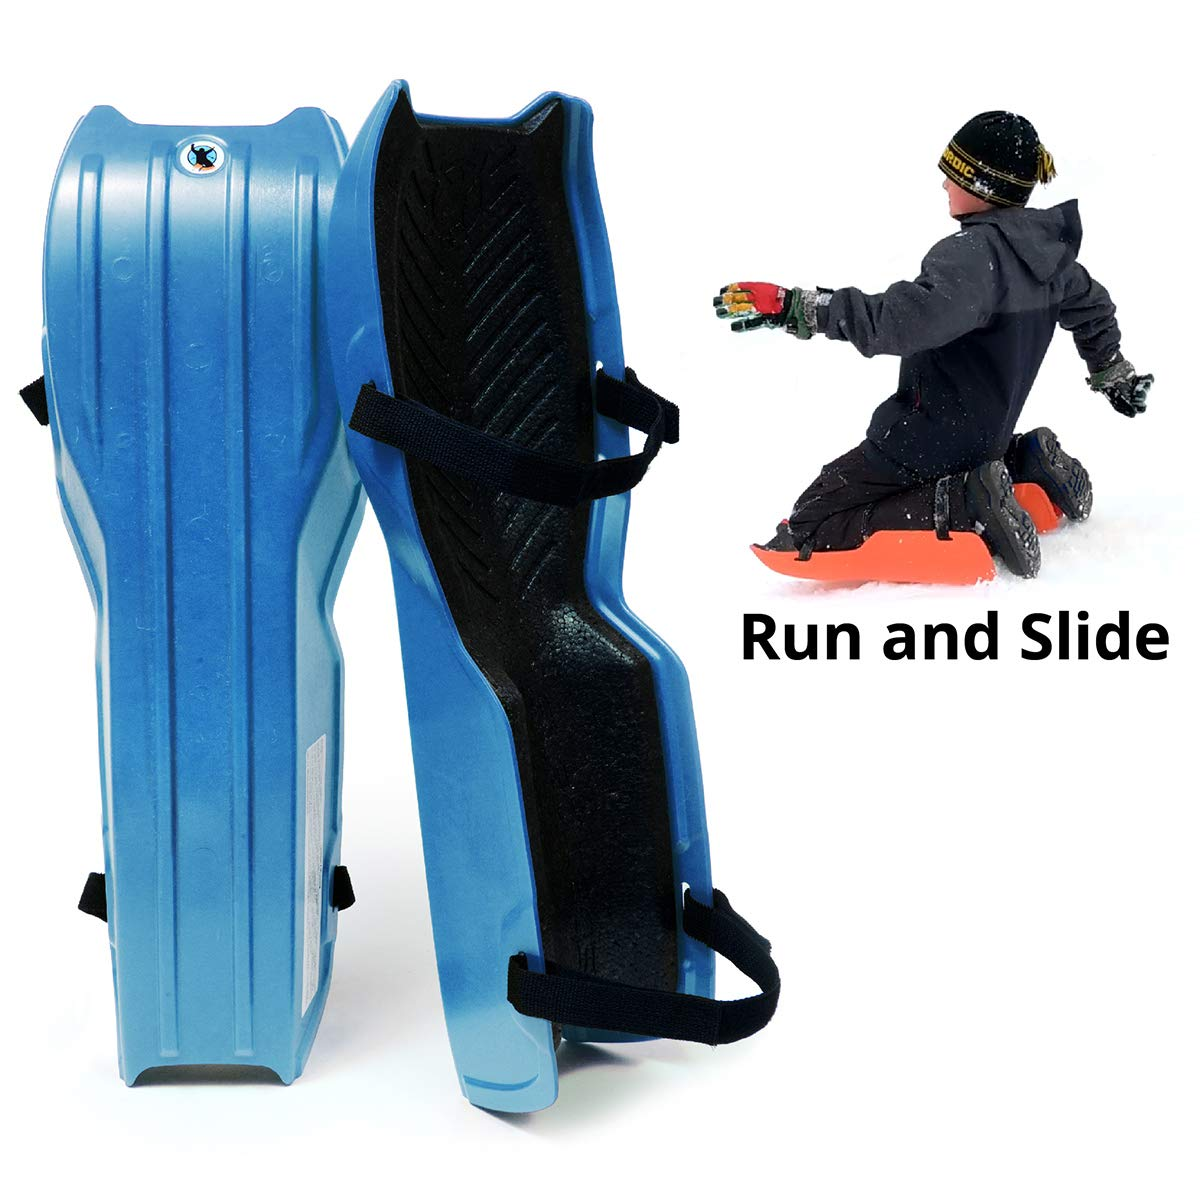 Sled Legs Wearable Snow Sleds – Fun Winter Accessories with Leg Support – Family Friendly Winter Activities – Exciting Winter Fun in The Snow (Winter Blue, Small)